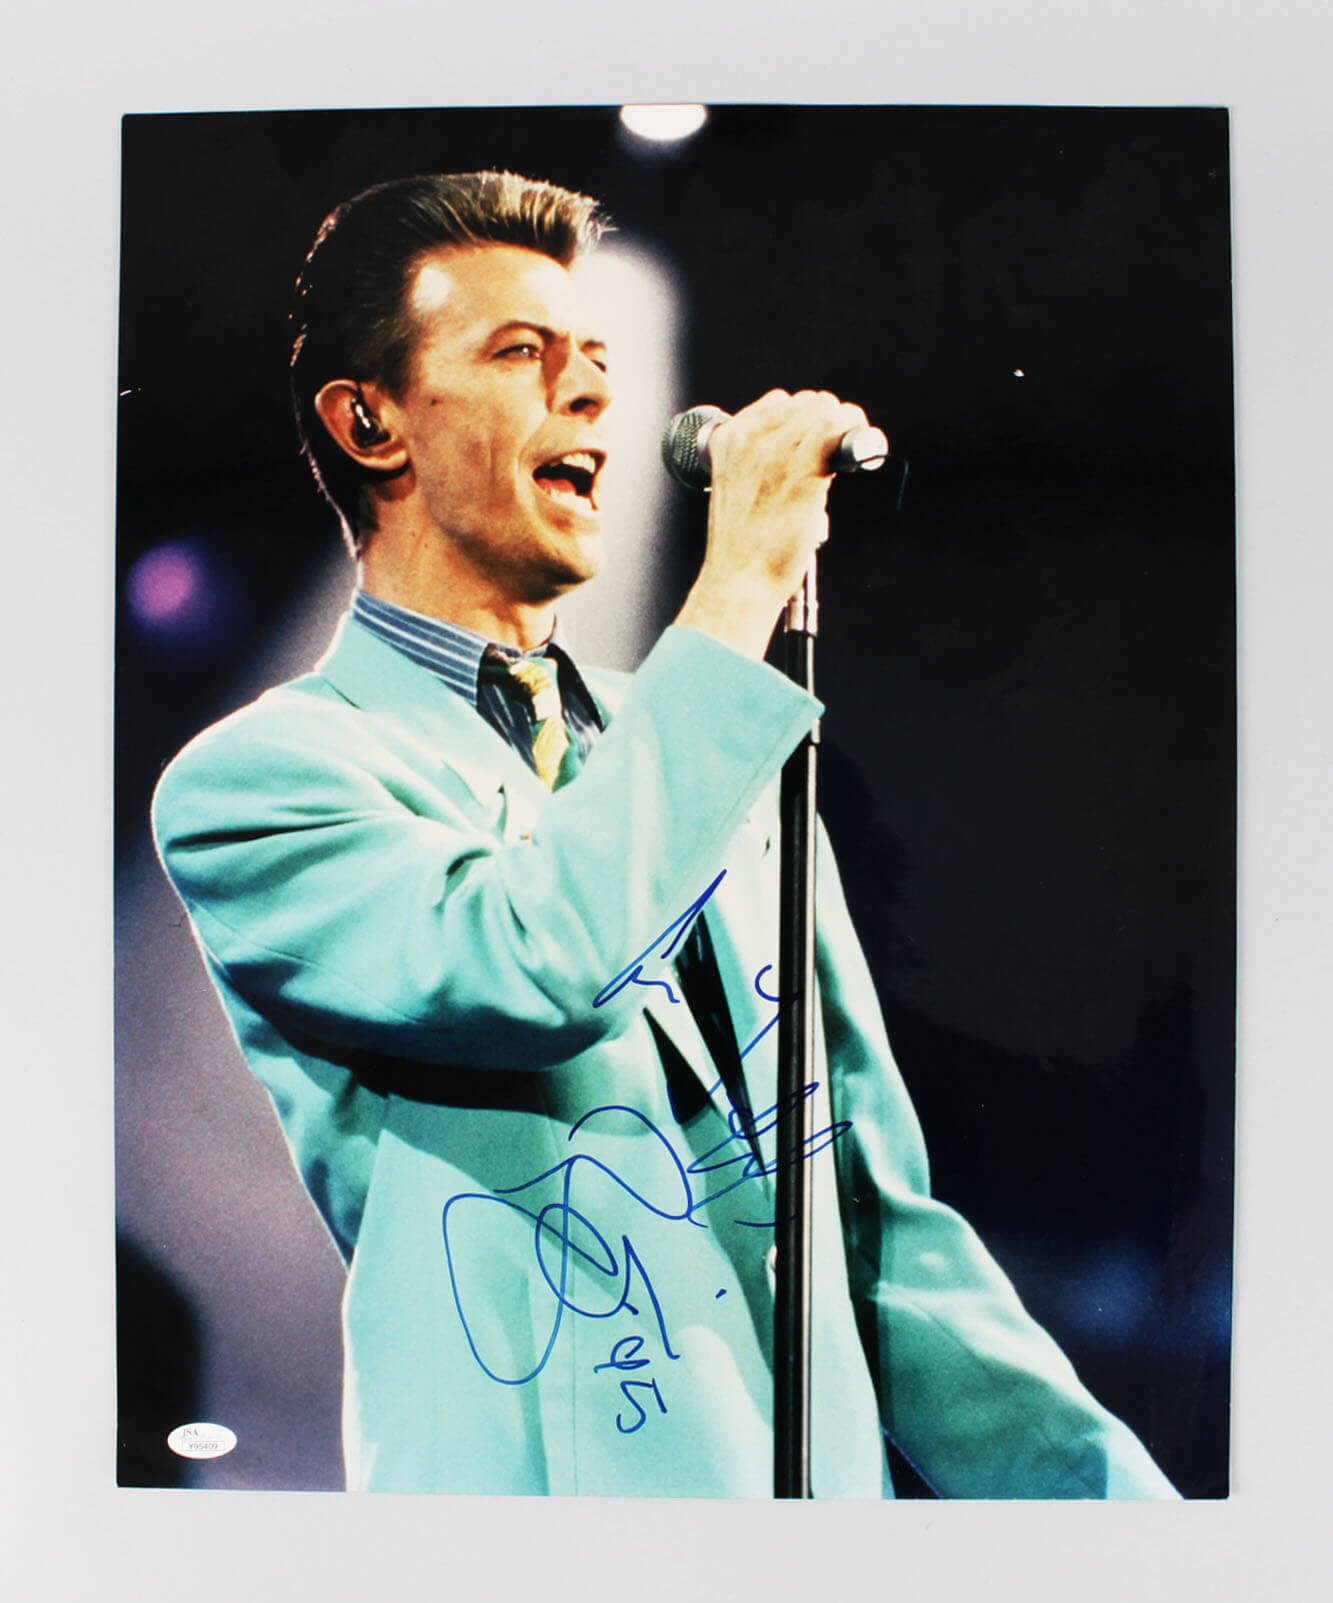 "David Bowie Signed 16×20 Concert Photo Inscribed ""95"" (JSA Full LOA)56976_01"